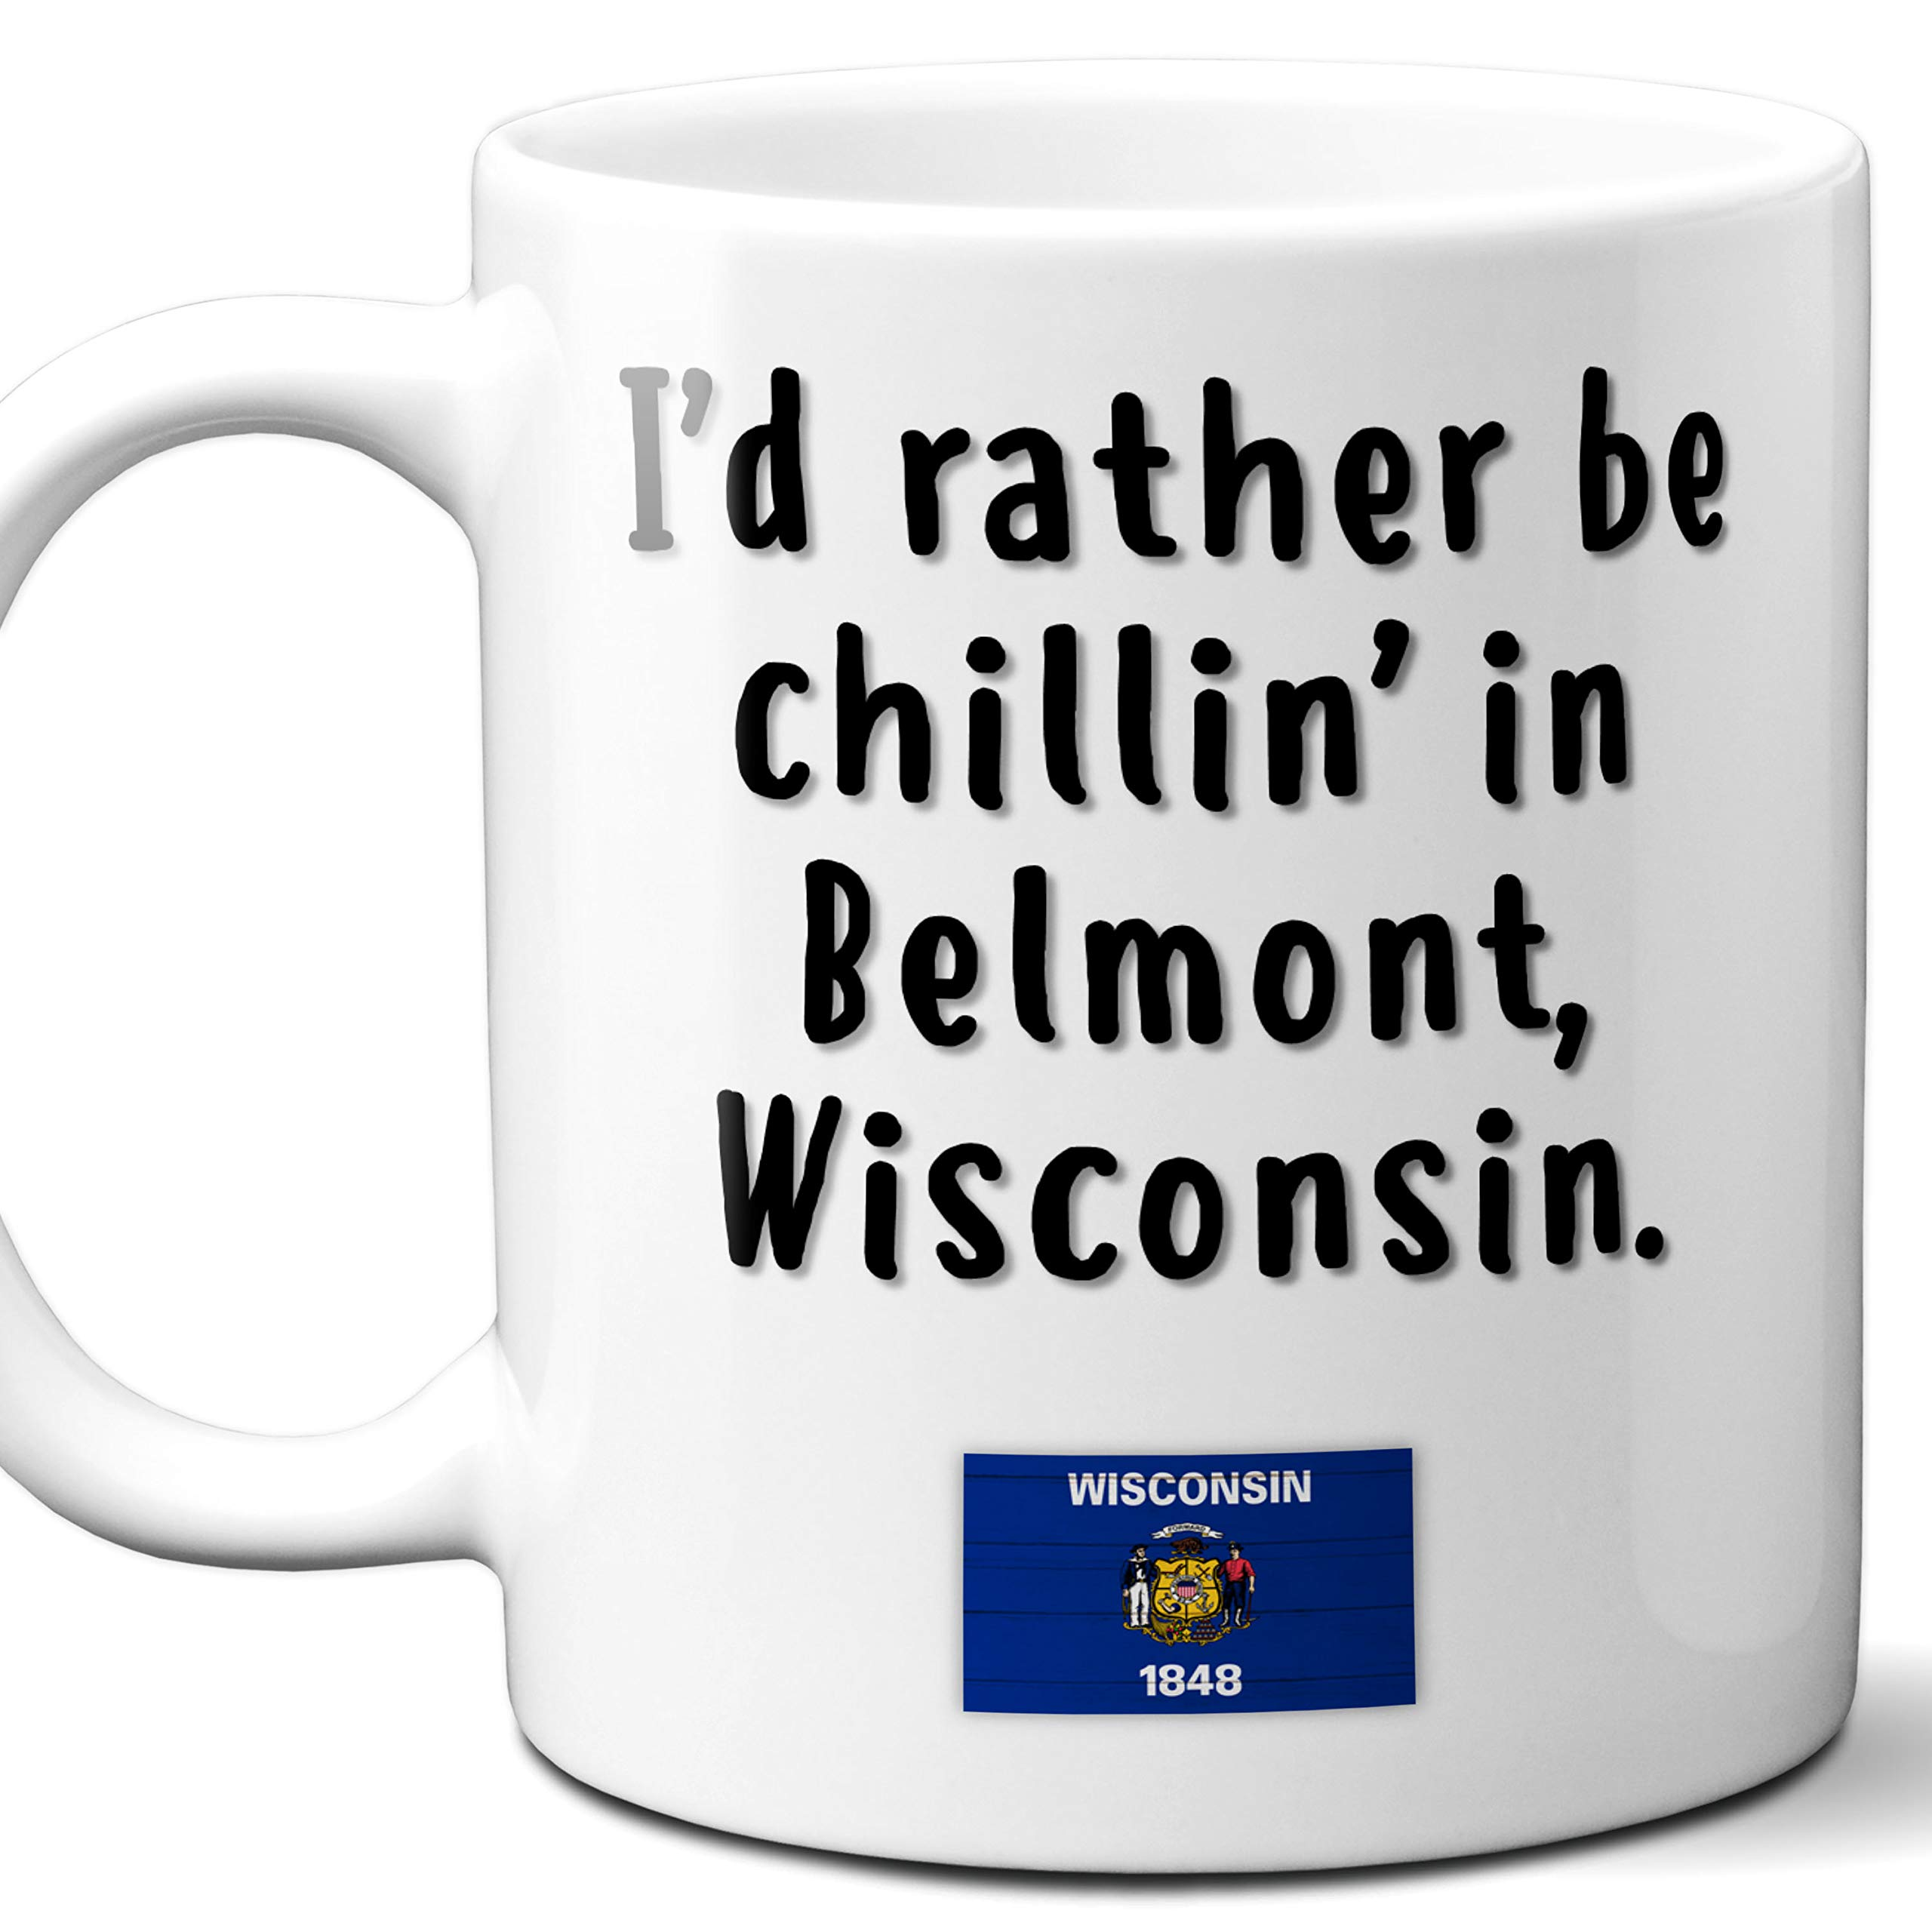 Belmont Wisconsin Coffee Mug Souvenir Gift.''Chillin In'' With WI Flag. 11 Ounces. by Ombura